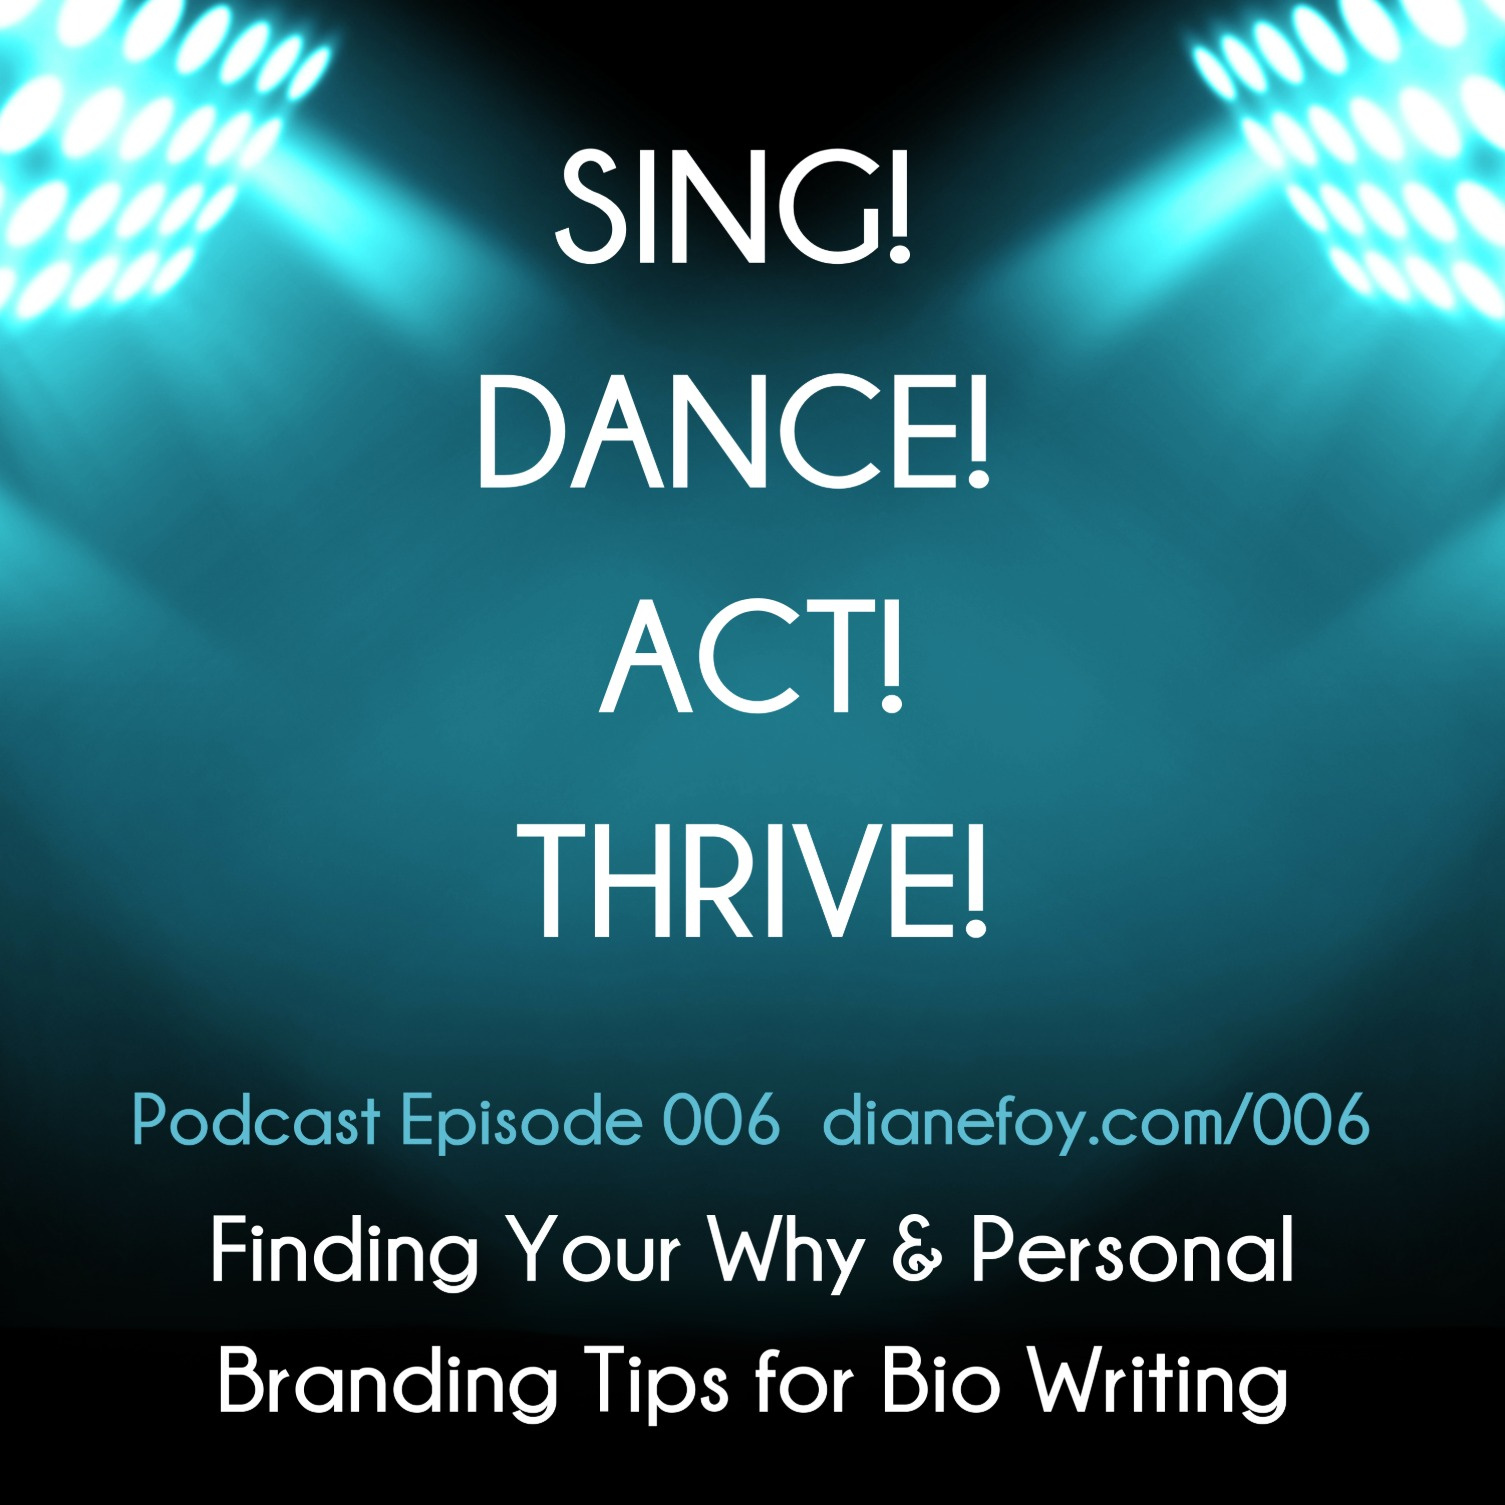 Finding Your Why & Personal Branding Tips for Bio Writing